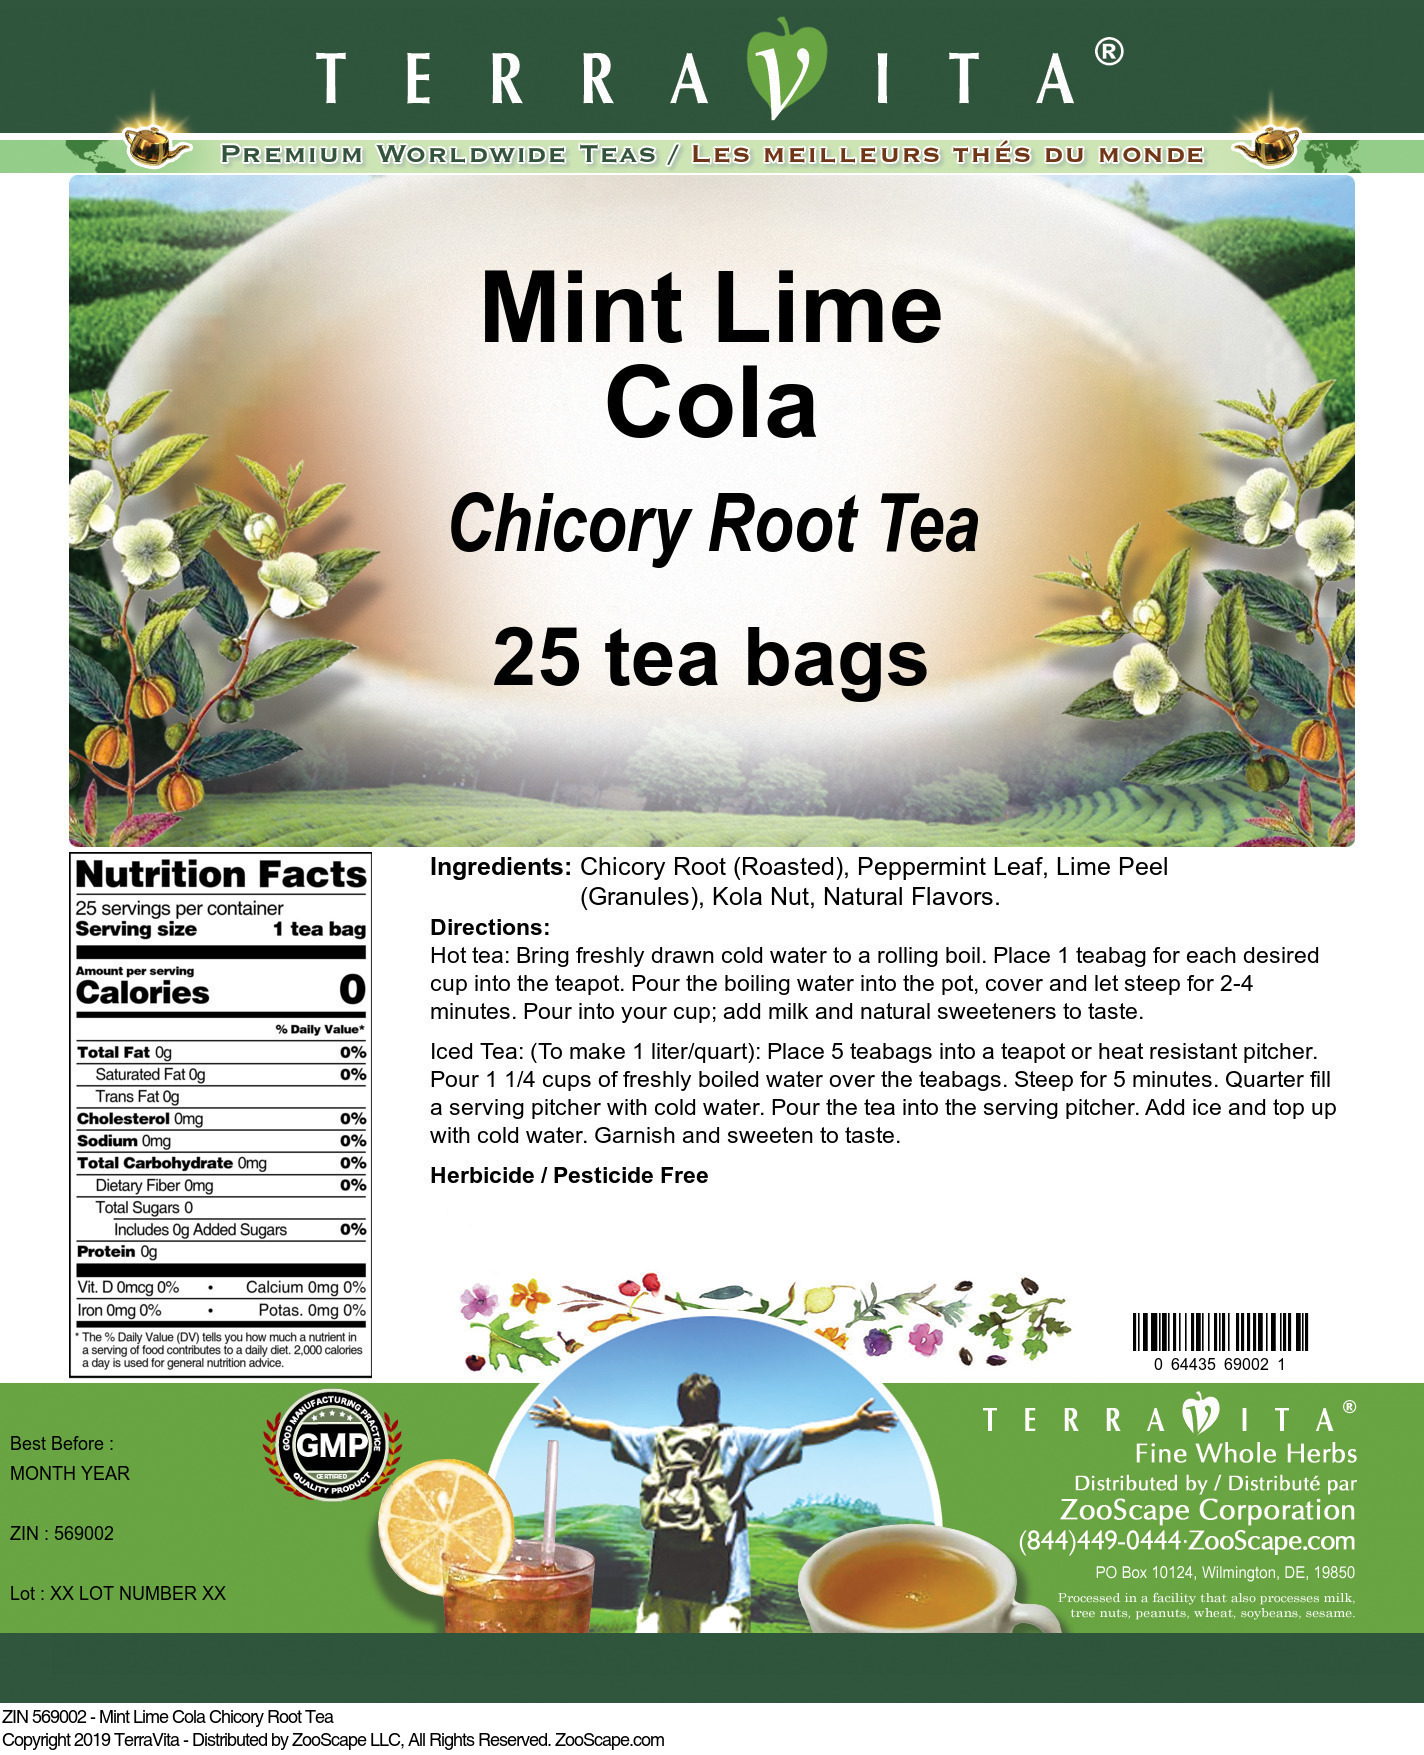 Mint Lime Cola Chicory Root Tea